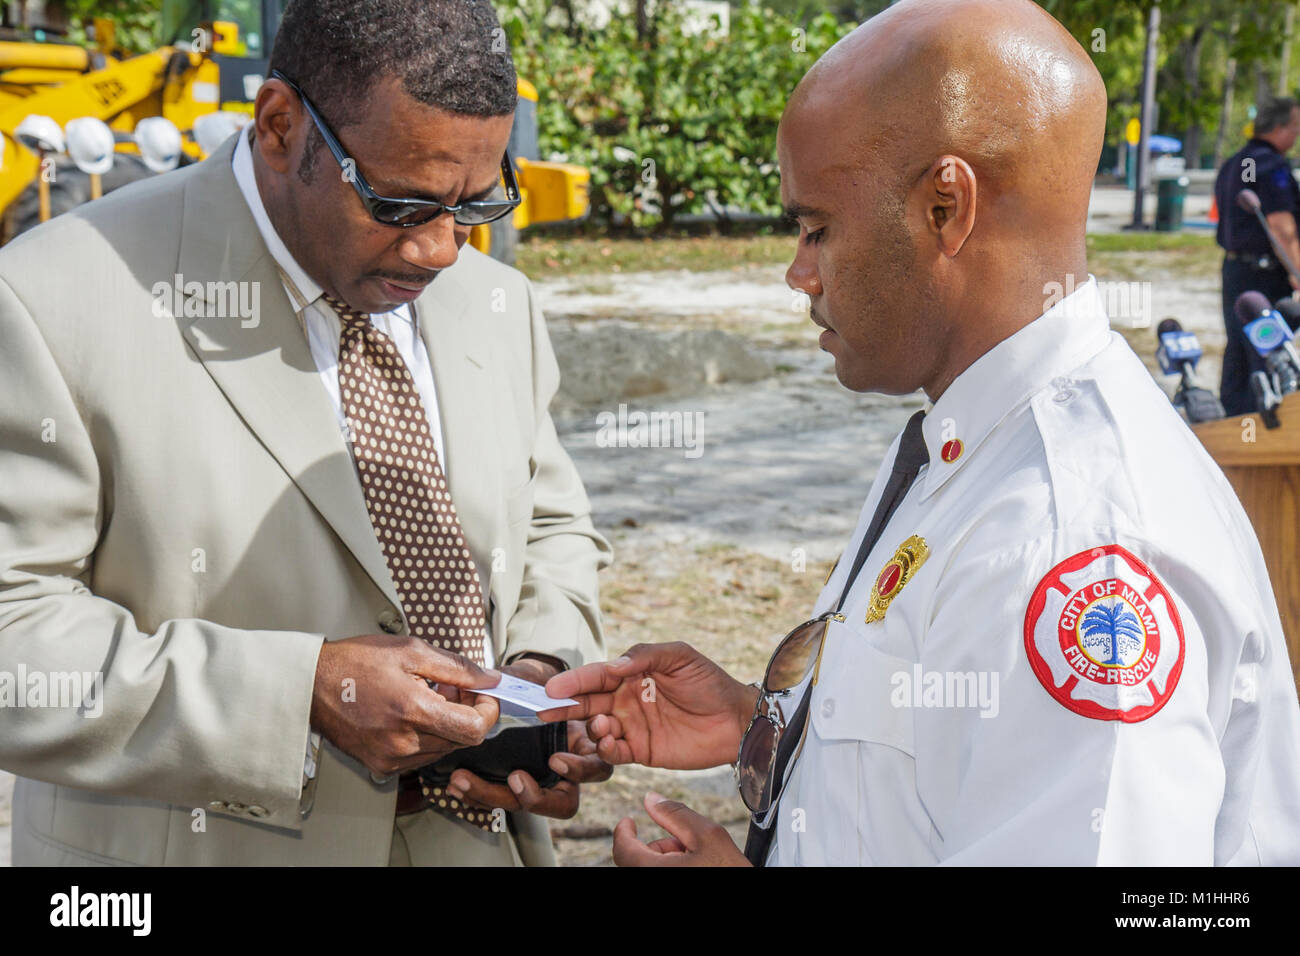 Black man city official fire rescue exchange business cards Stock ...